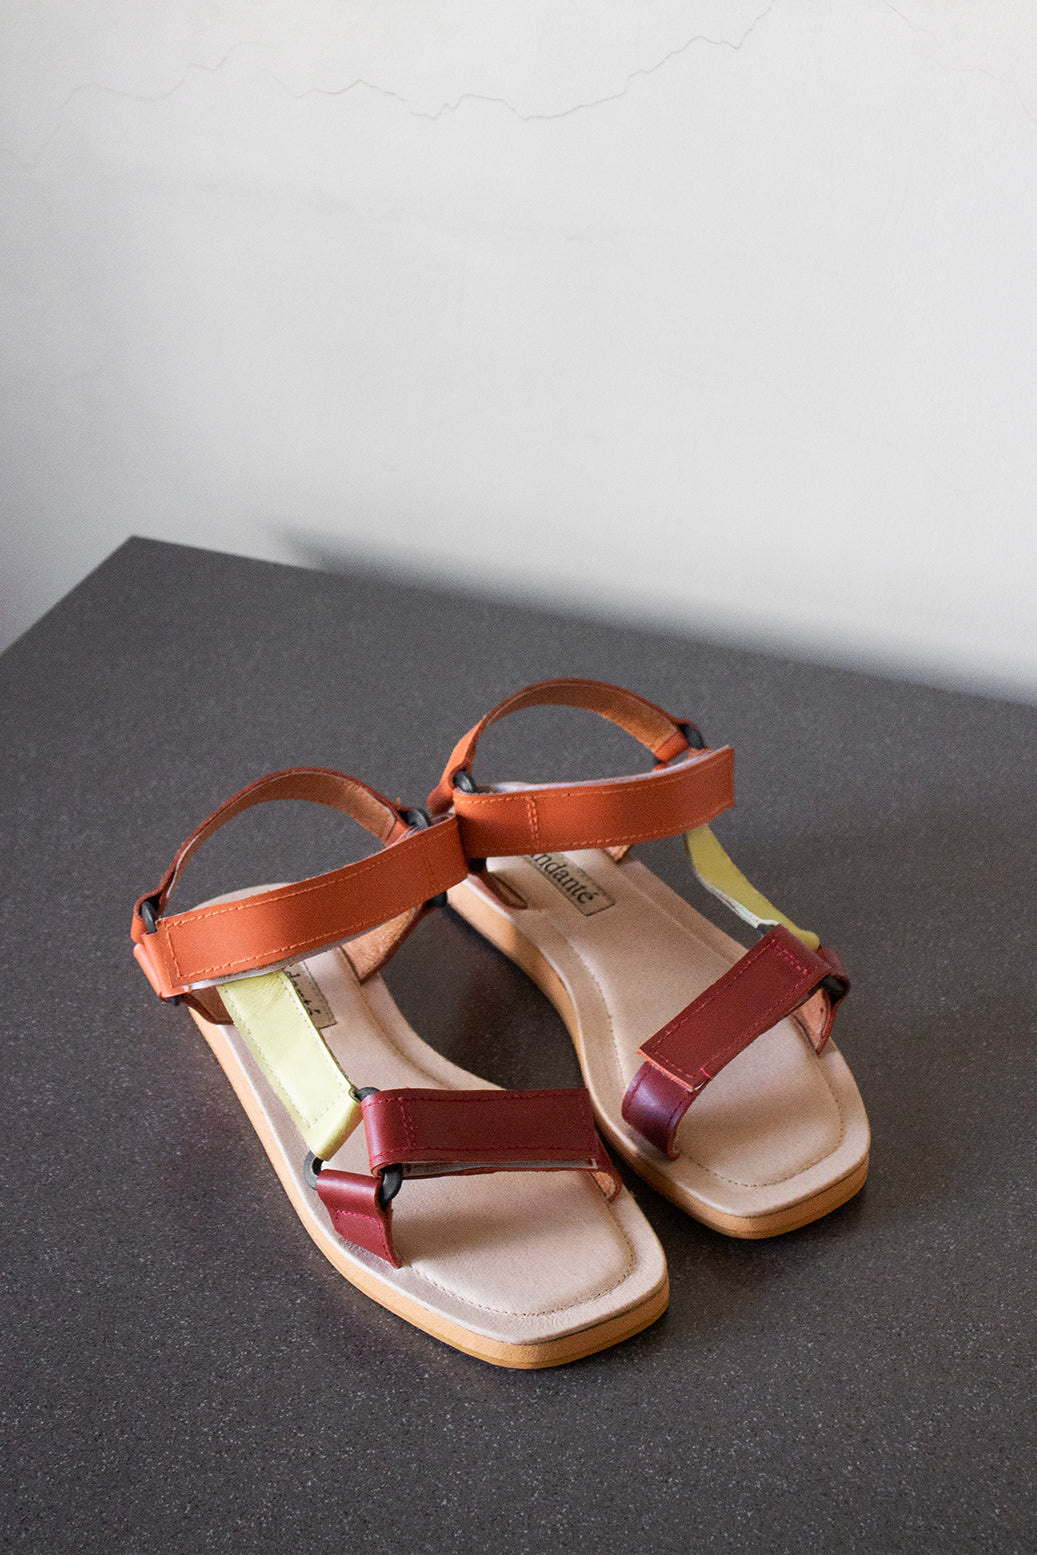 The Sportif Sandal in Colada - andanté, sandals - loafers, sandals leather footwear